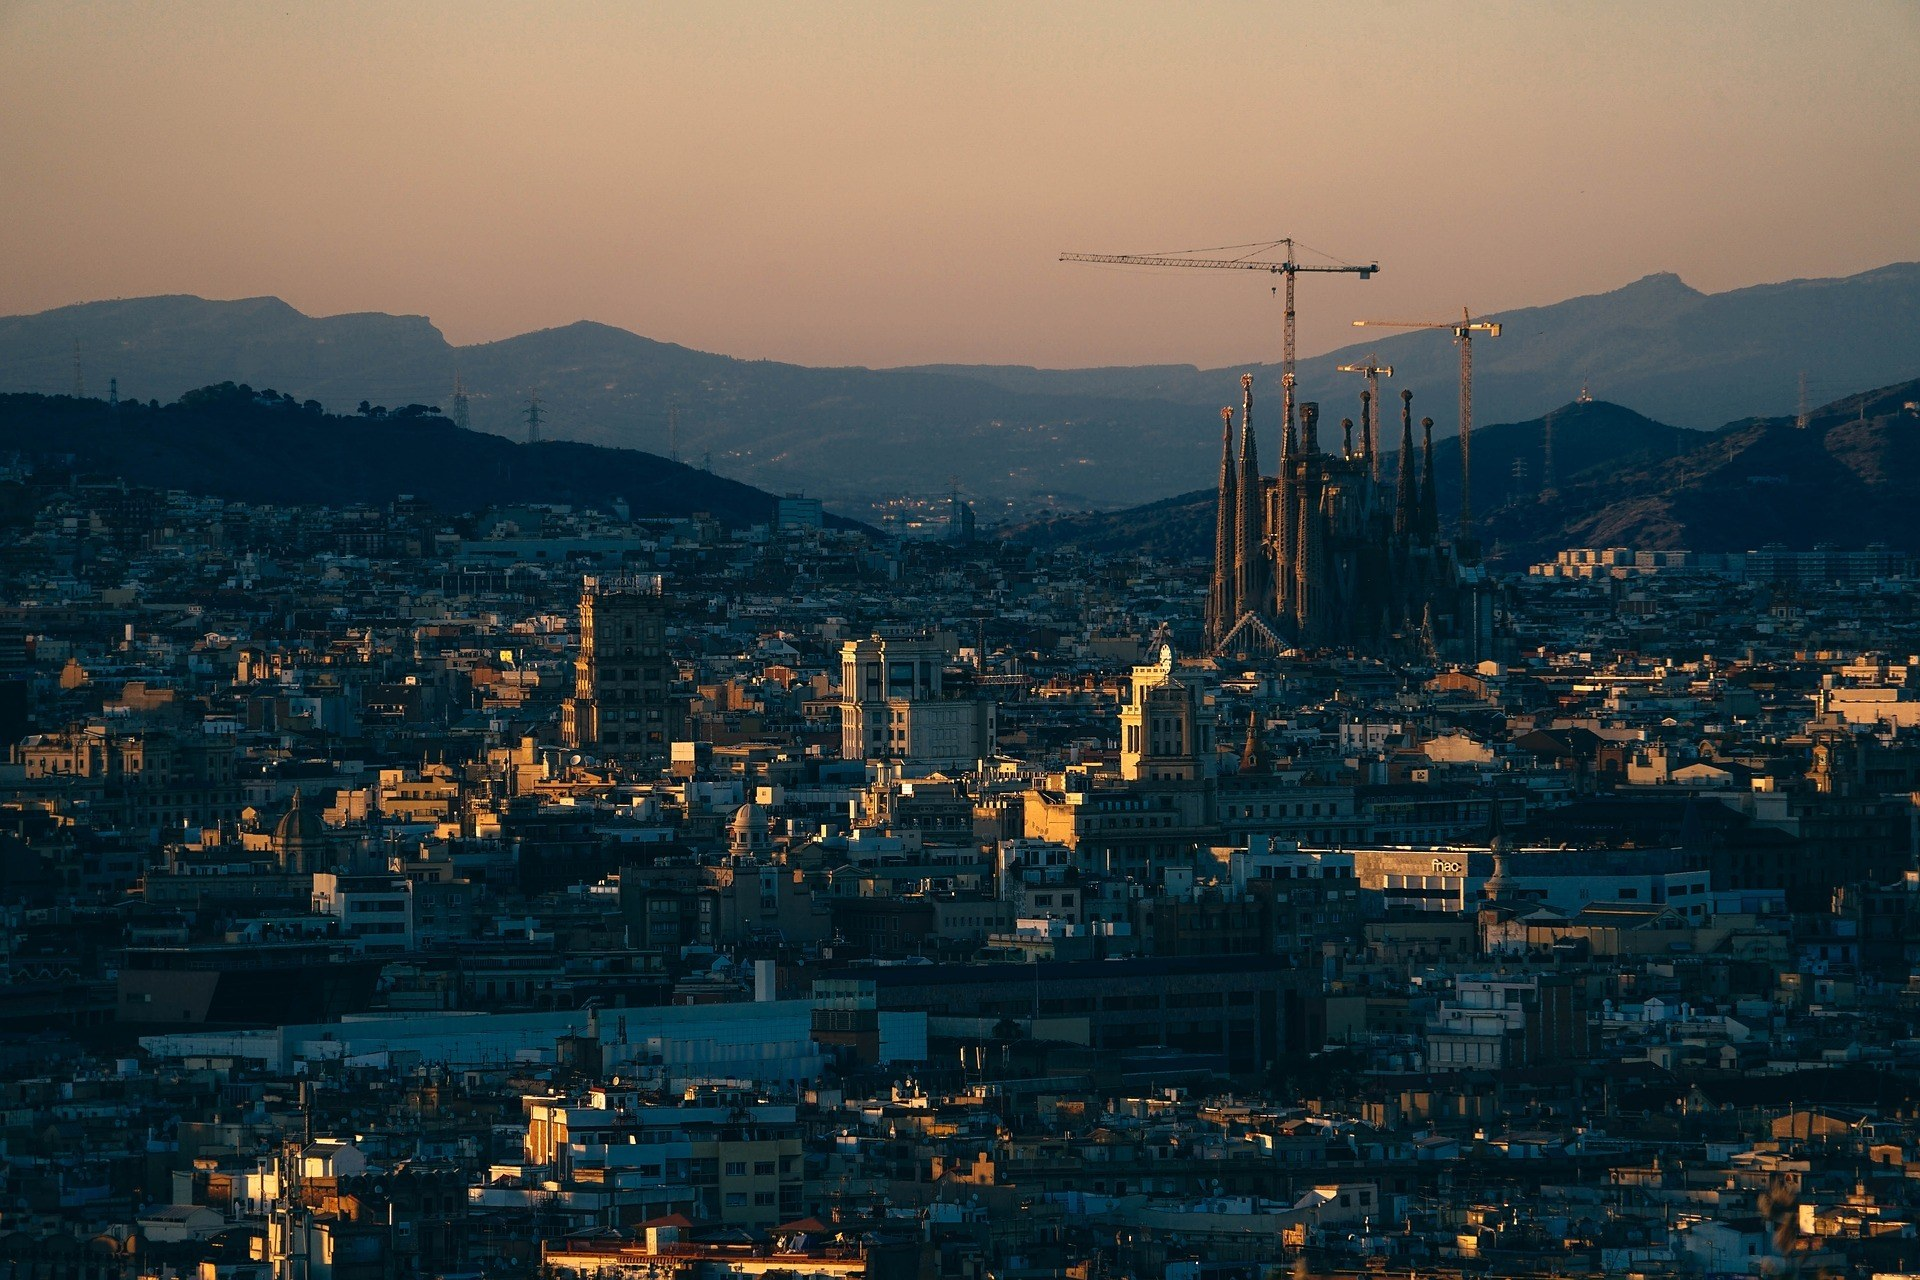 Visiting Barcelona: 5 Places Not to Miss - Barcelona landscape